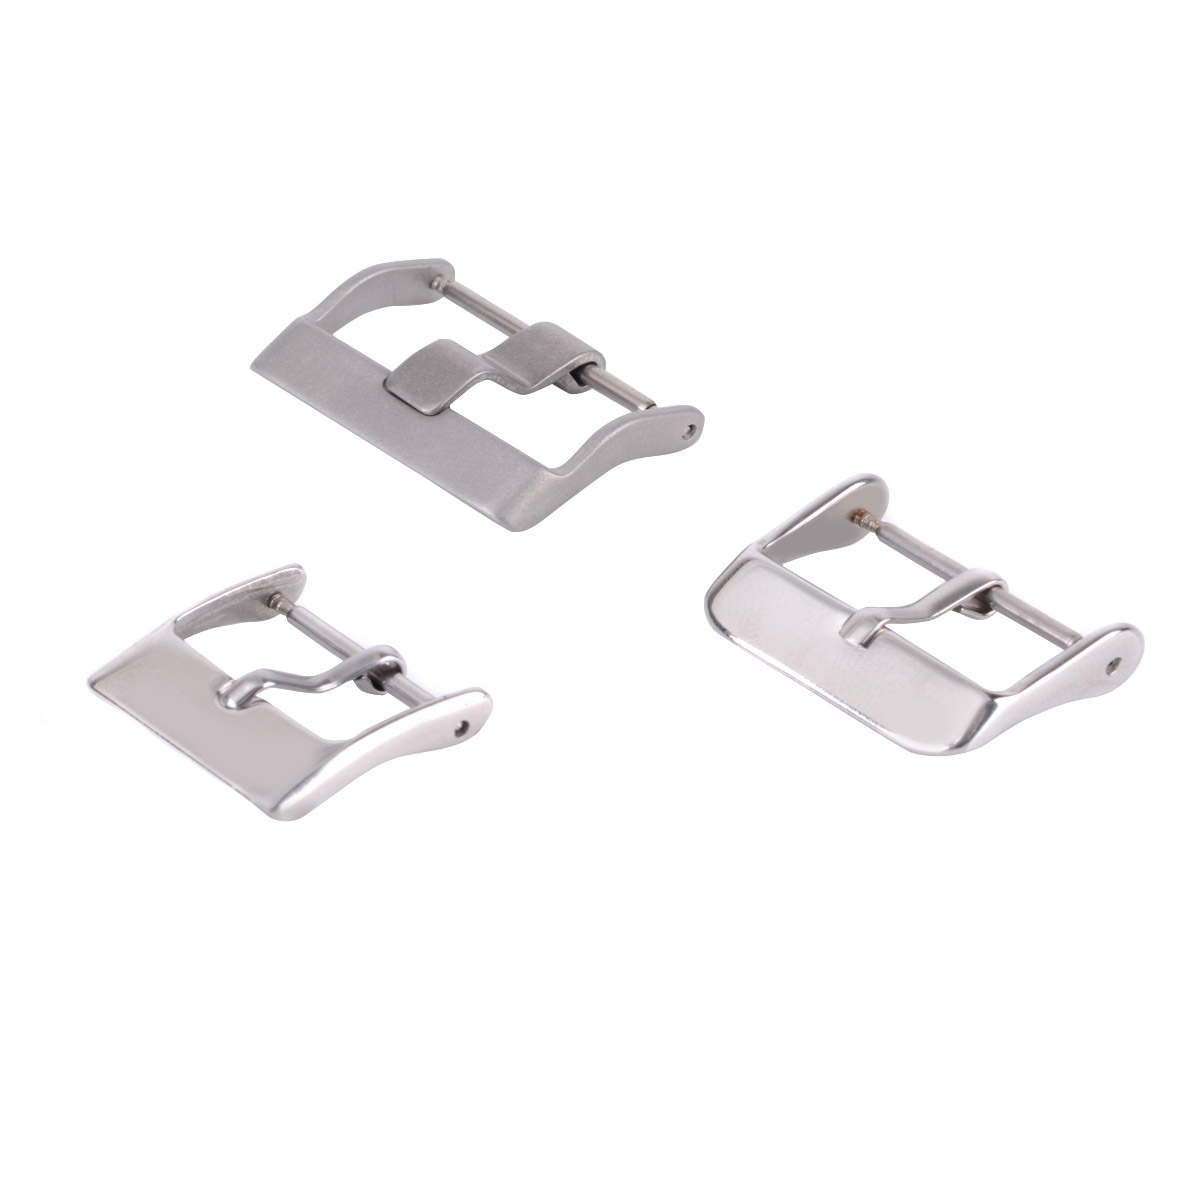 10pcs 18mm/20mm/22mm Stainless Steel Square Clasp Strap For Watch Bands Buckles decoration DIY Accessory watchband Clasp10pcs 18mm/20mm/22mm Stainless Steel Square Clasp Strap For Watch Bands Buckles decoration DIY Accessory watchband Clasp